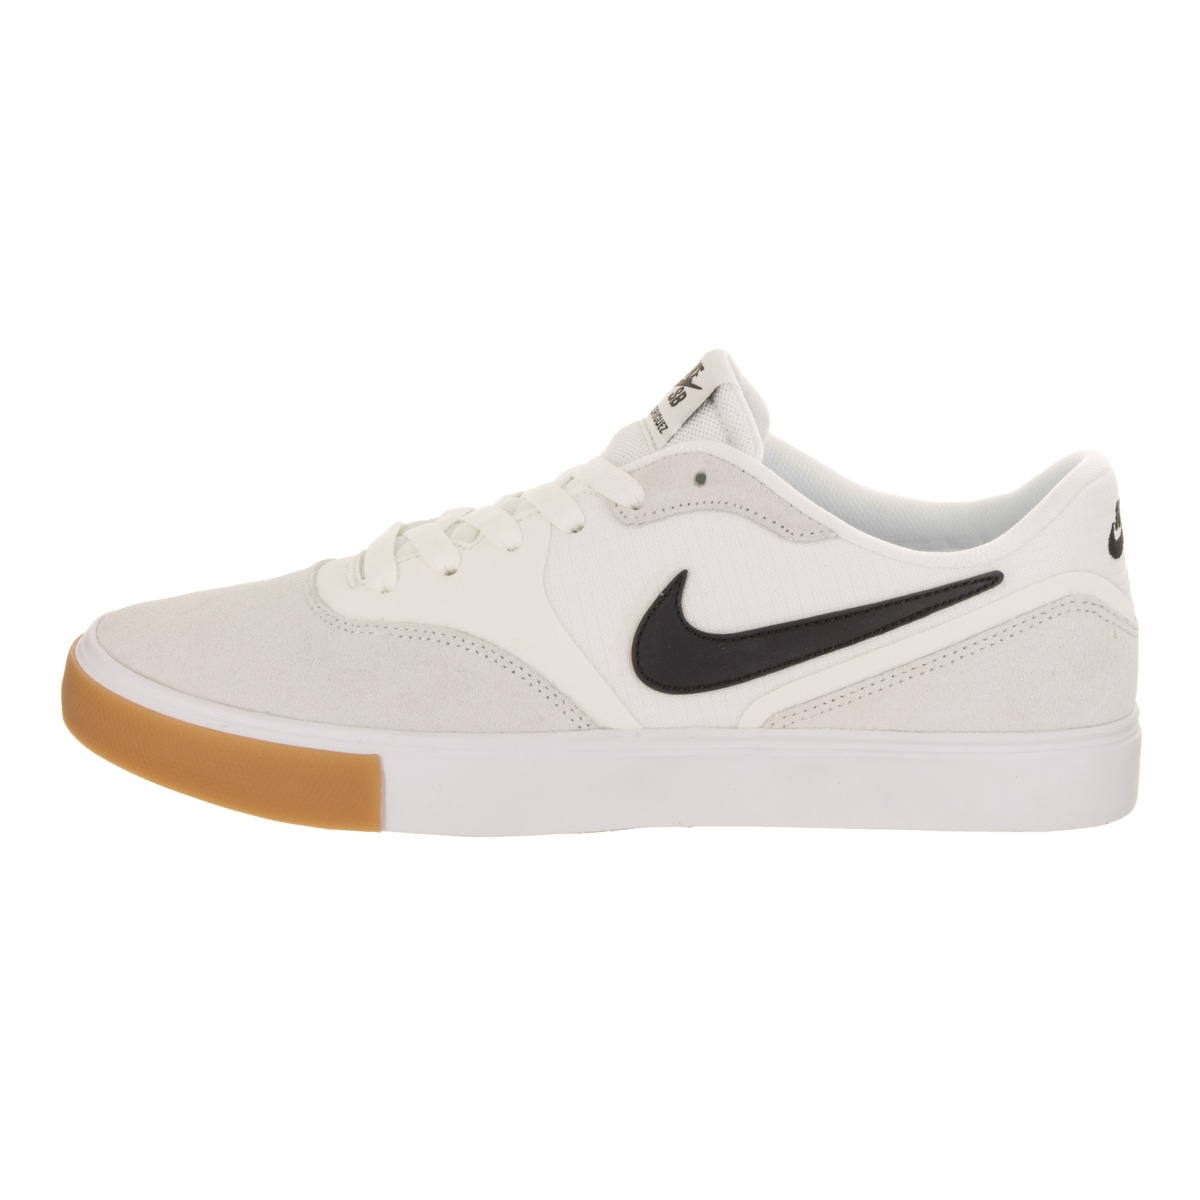 332ddd3b887a25 Shop Nike Men s Paul Rodriguez 9 VR Skate Shoe - Free Shipping Today -  Overstock - 16850179